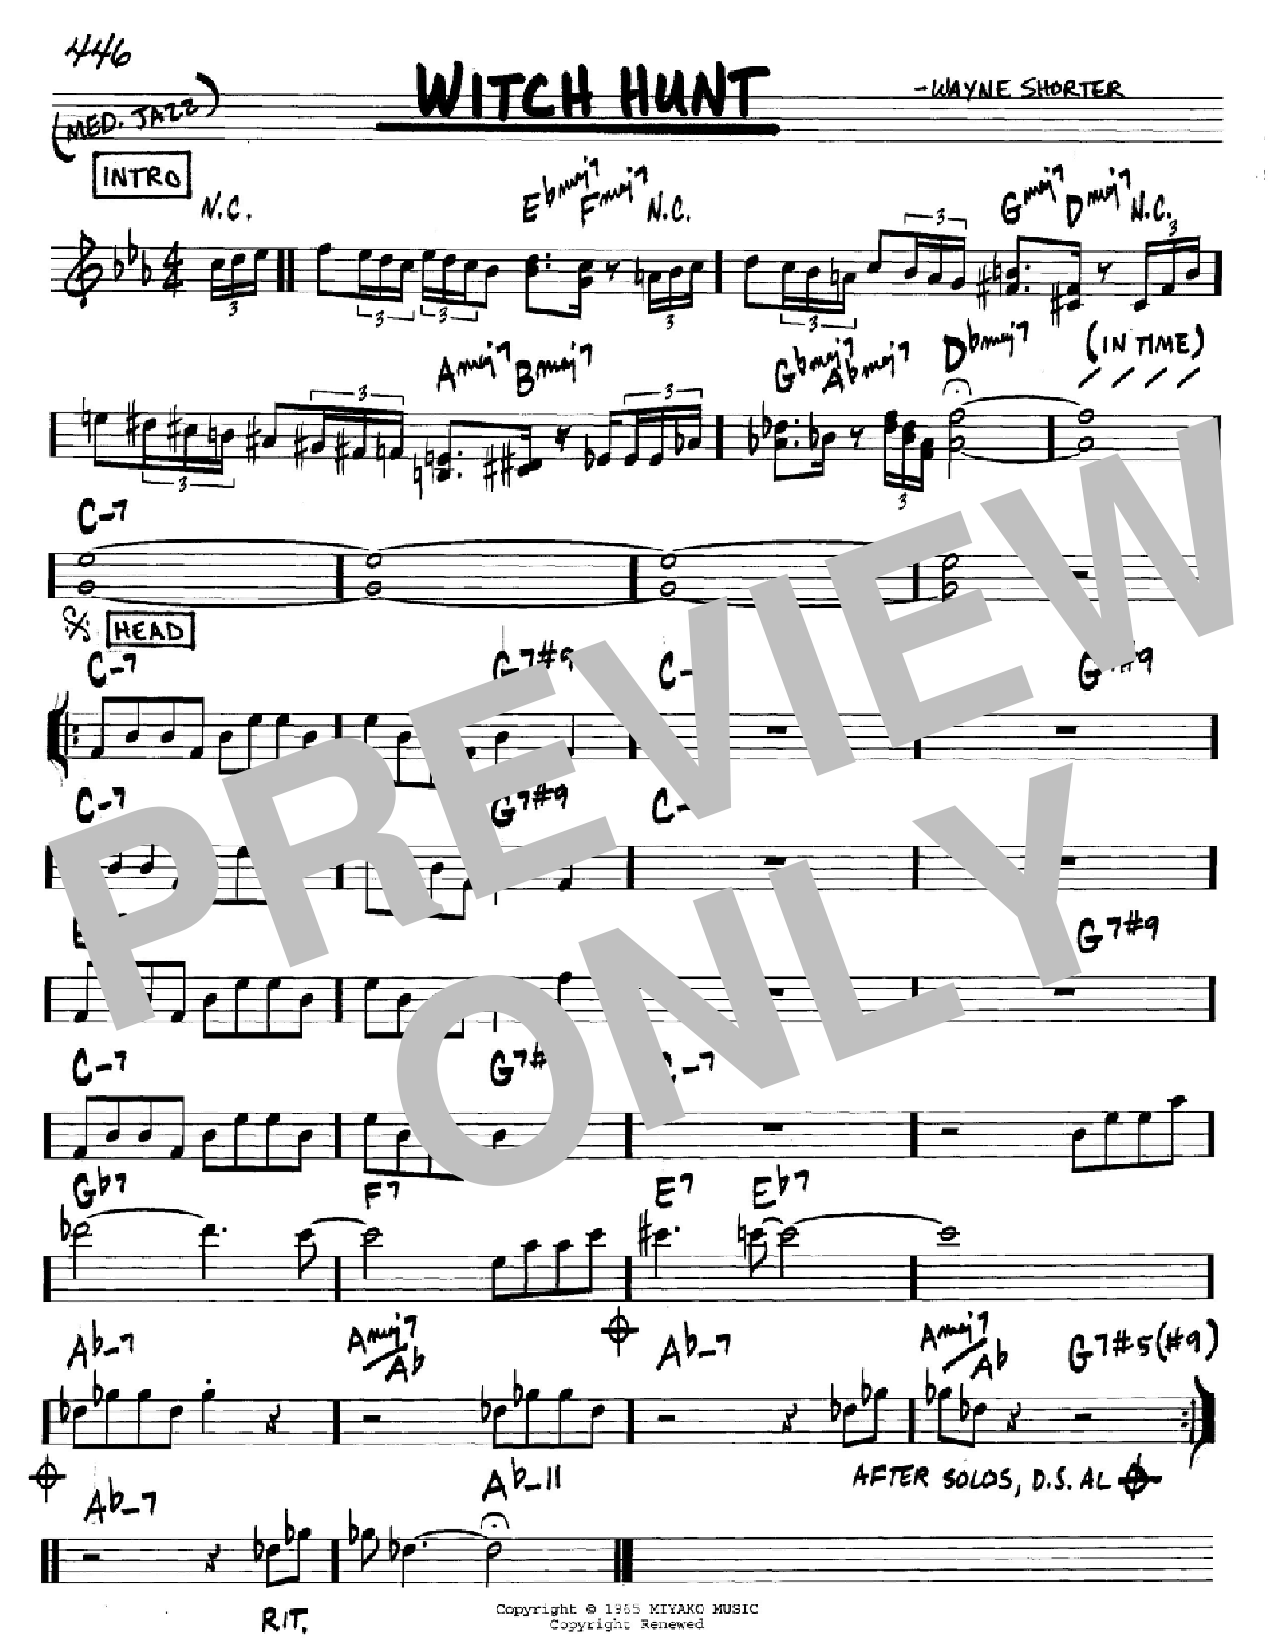 Witch Hunt Sheet Music